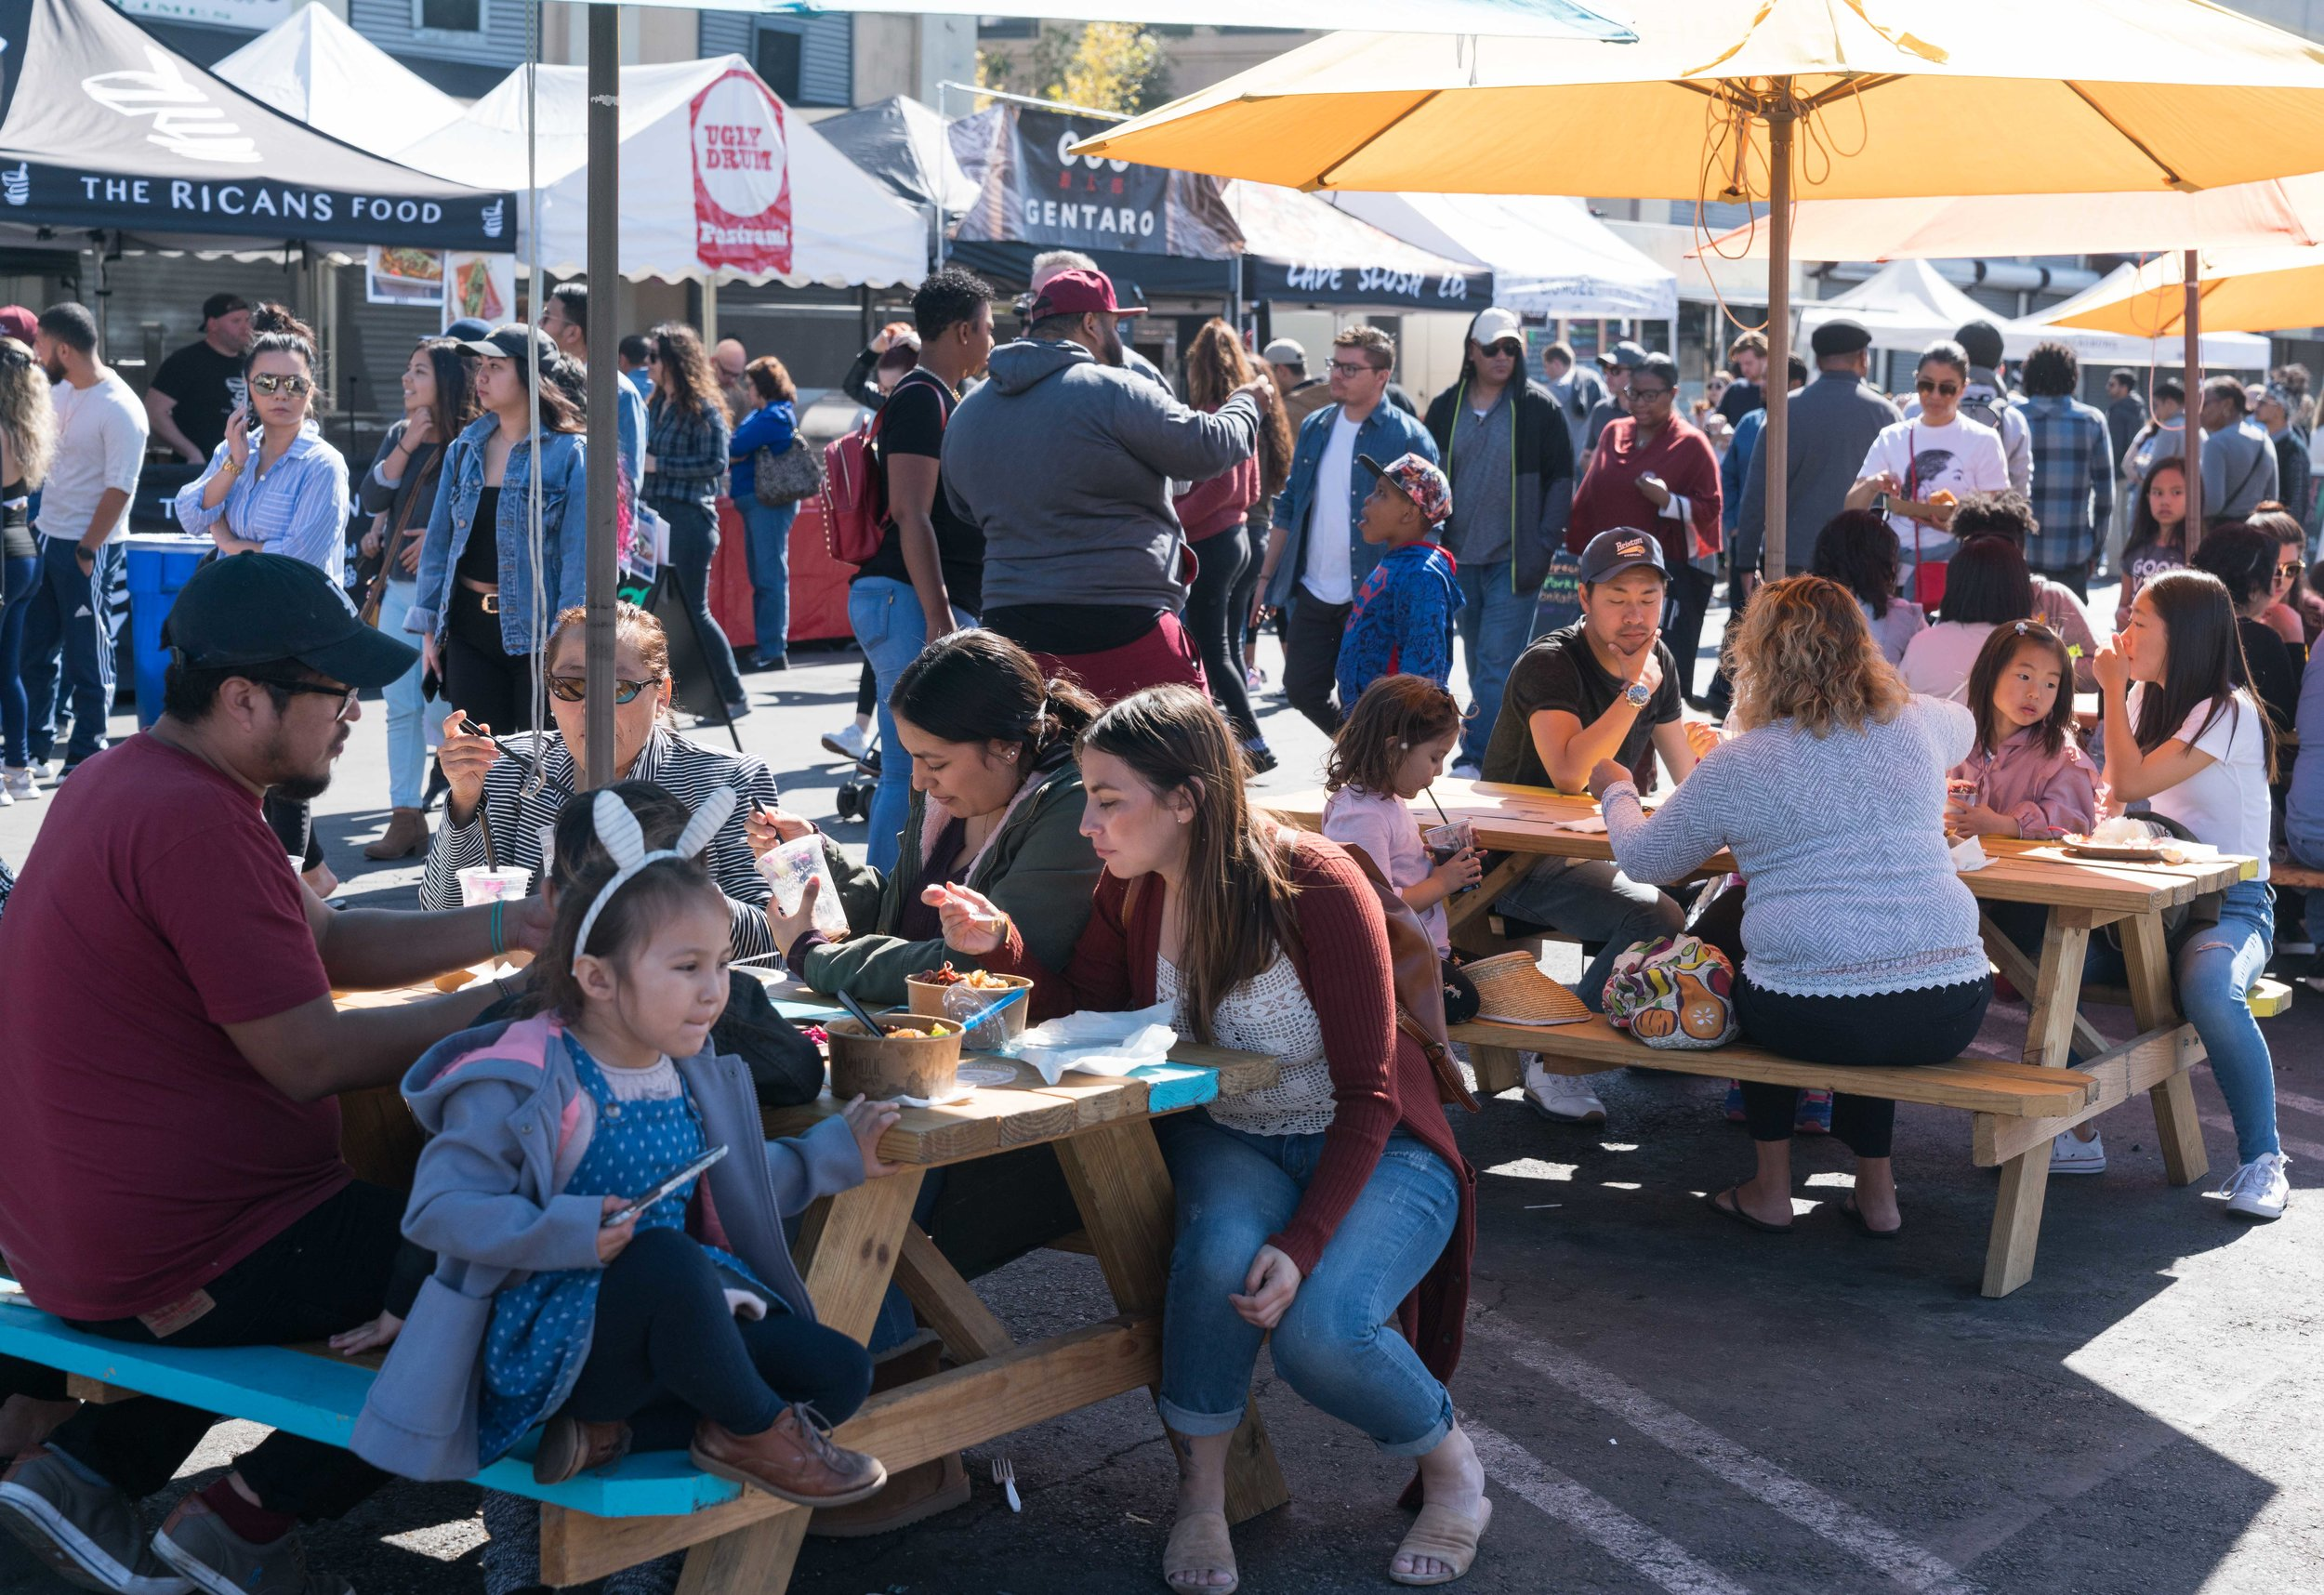 Diners at Smorgasburg LA in the downtown section of Los Angeles, Calif. on Sunday, February 25, 2018. Smorgasburg LA is a collection of food and shopping vendors that gather each Sunday at Row DTLA. (Photo by Helena Sung)